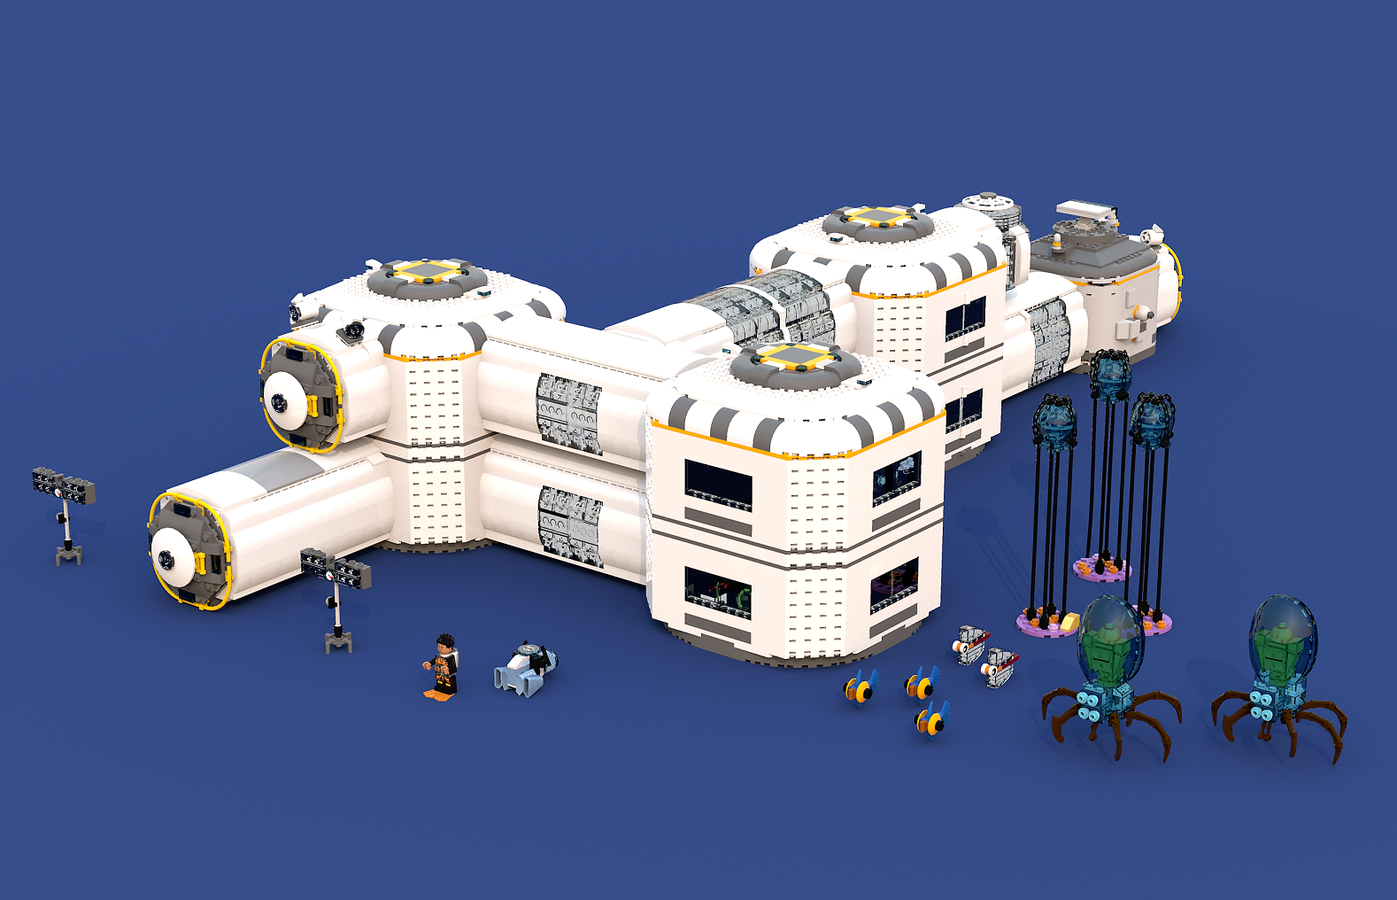 Subnautica Underwater Base In The Grand Reef Cool Lego Cool Lego Creations Lego Architecture